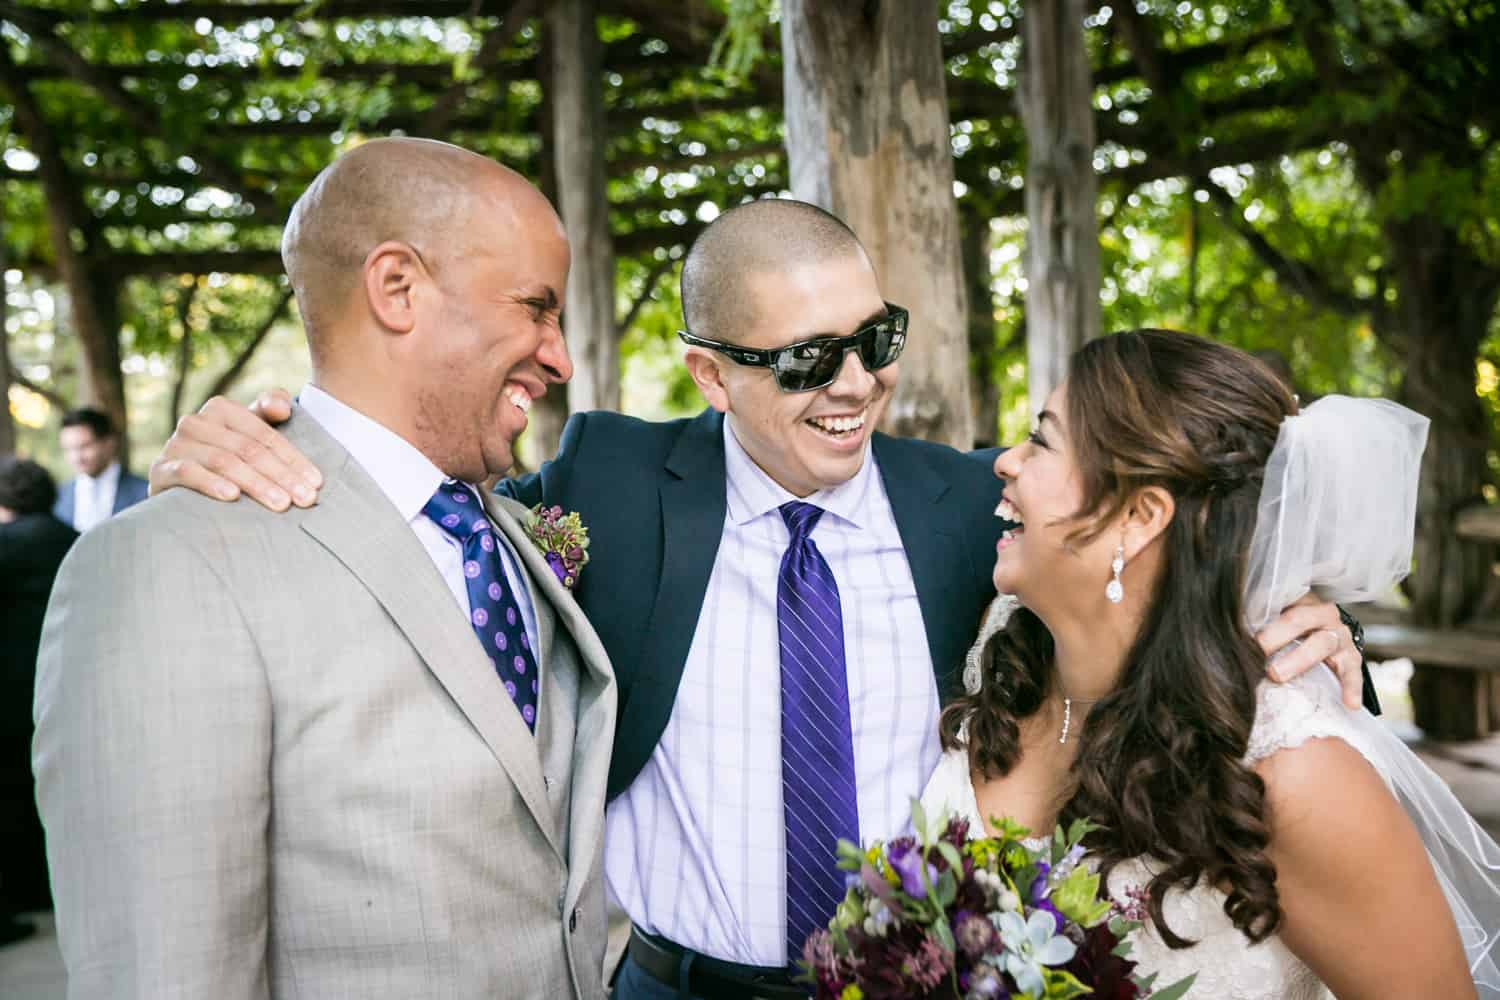 Bride and groom with male guest wearing sunglasses